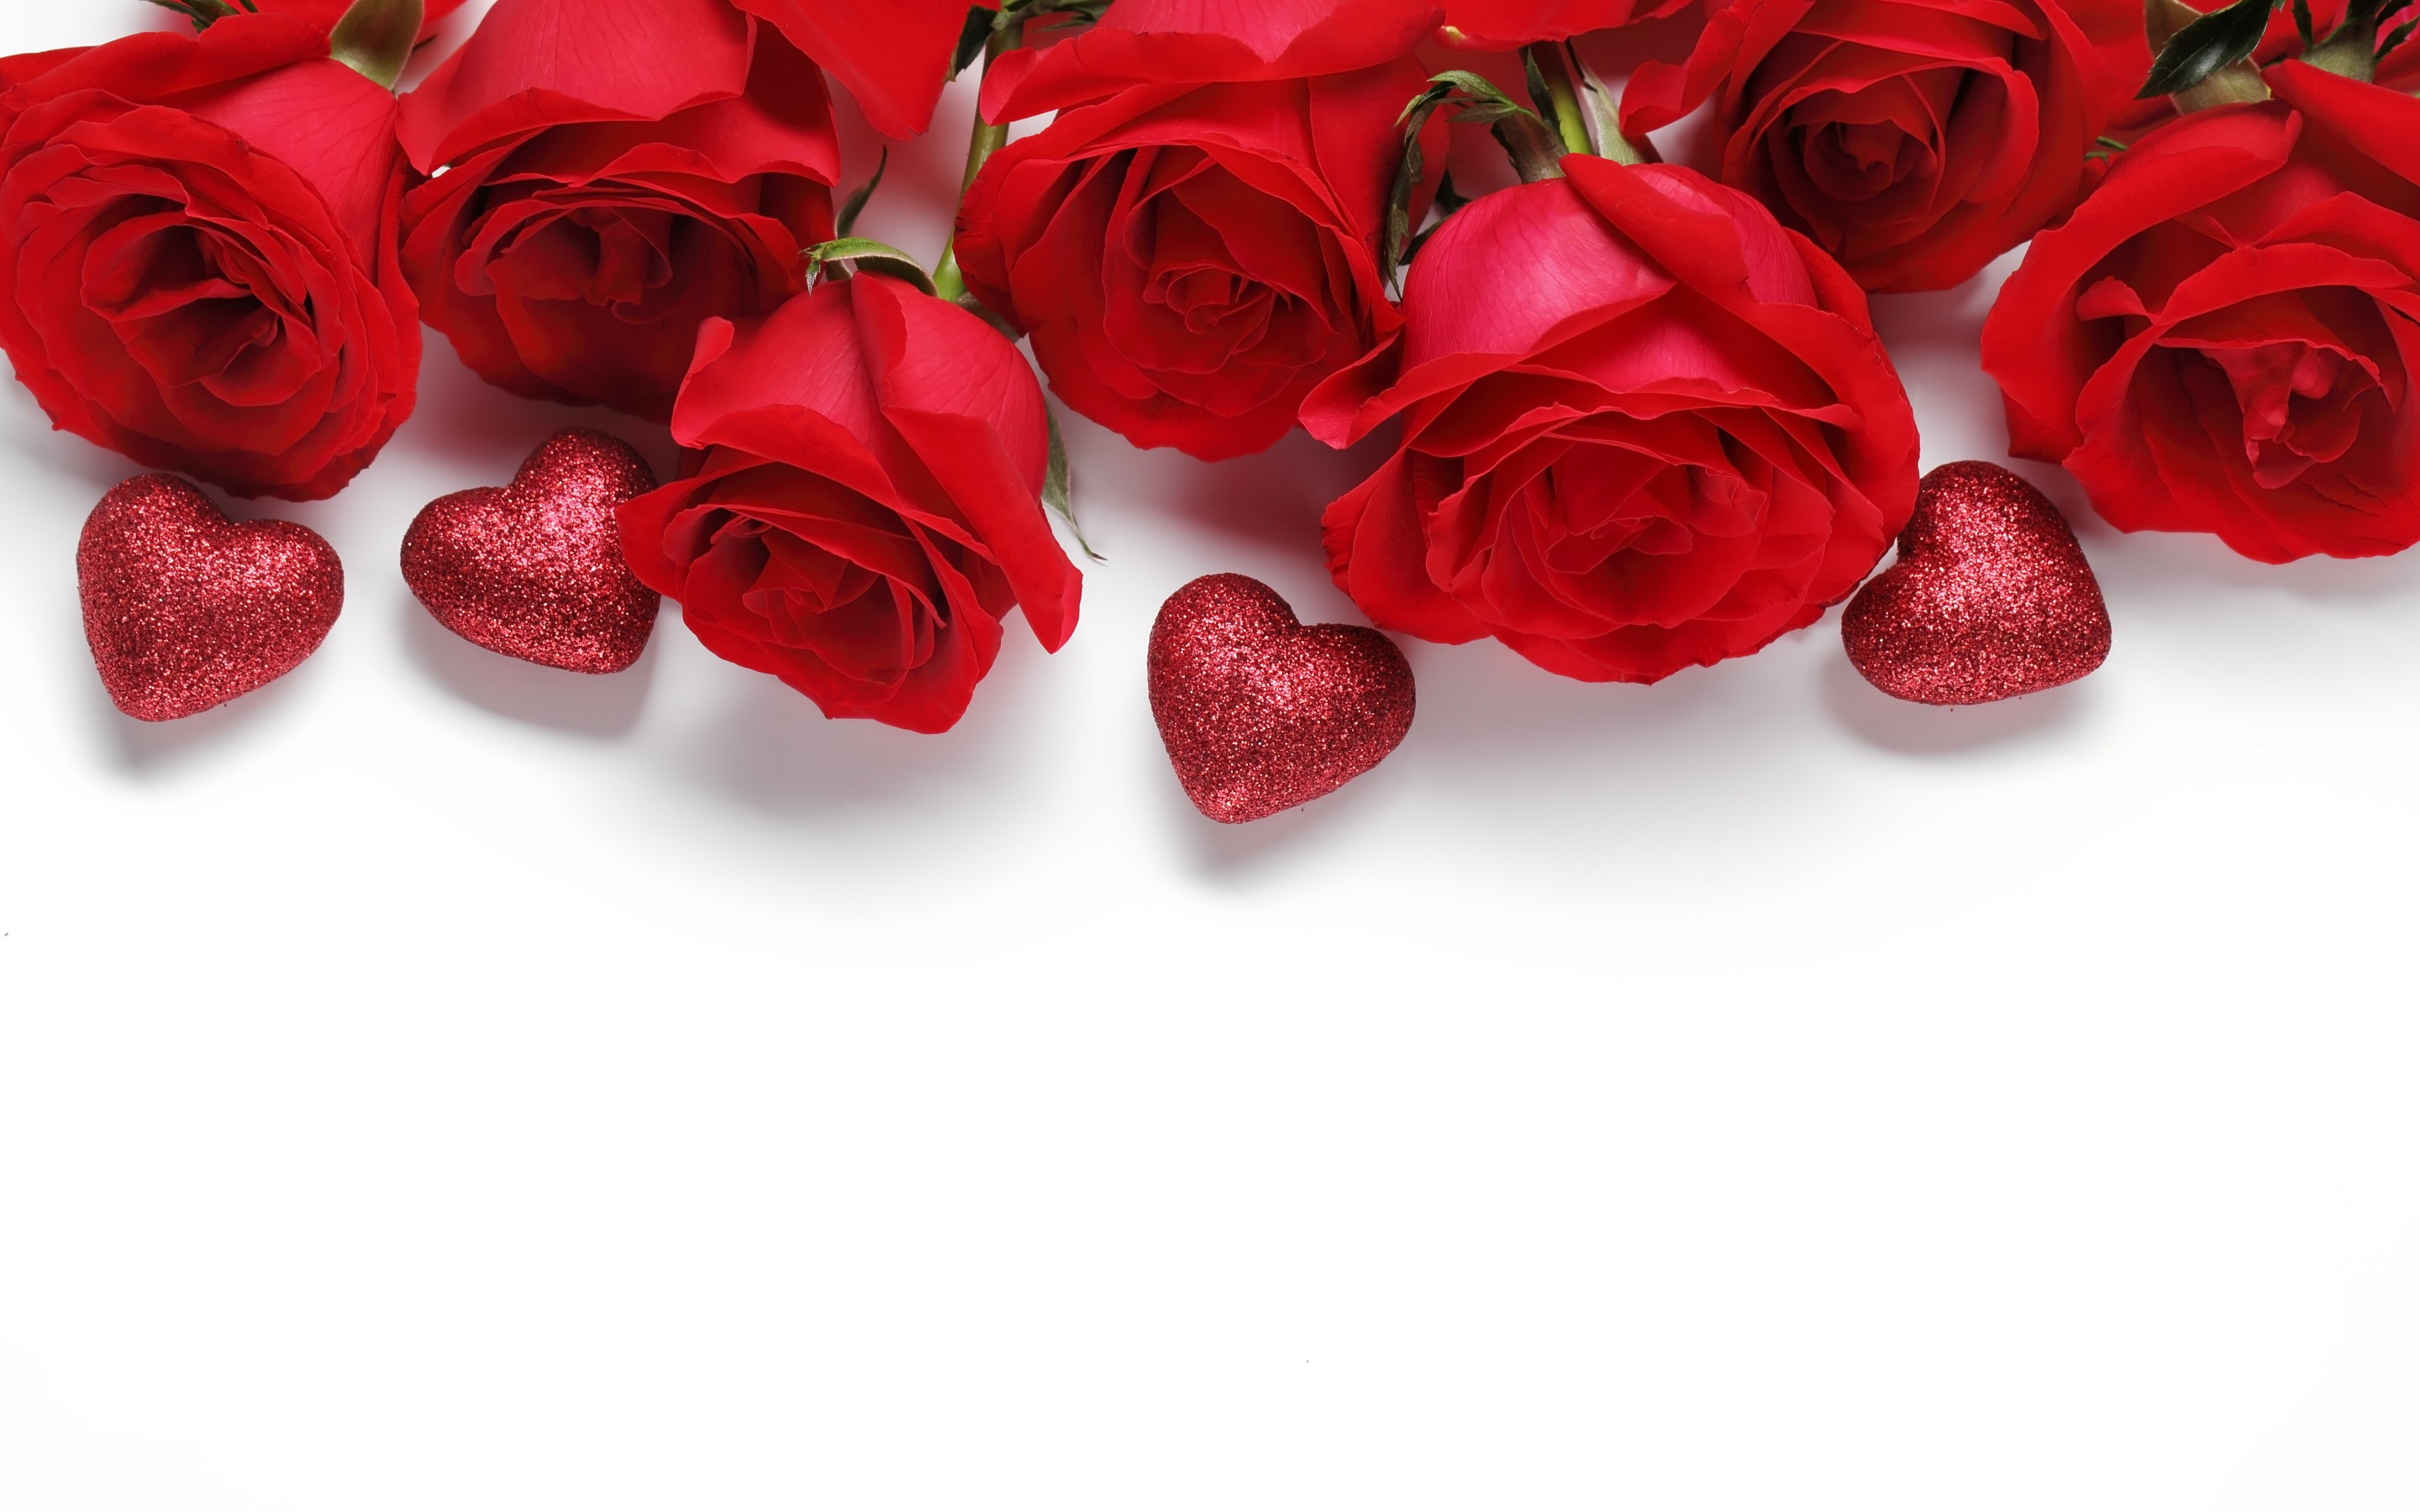 Red Roses And Hearts Wallpaper Red Roses And Hearts